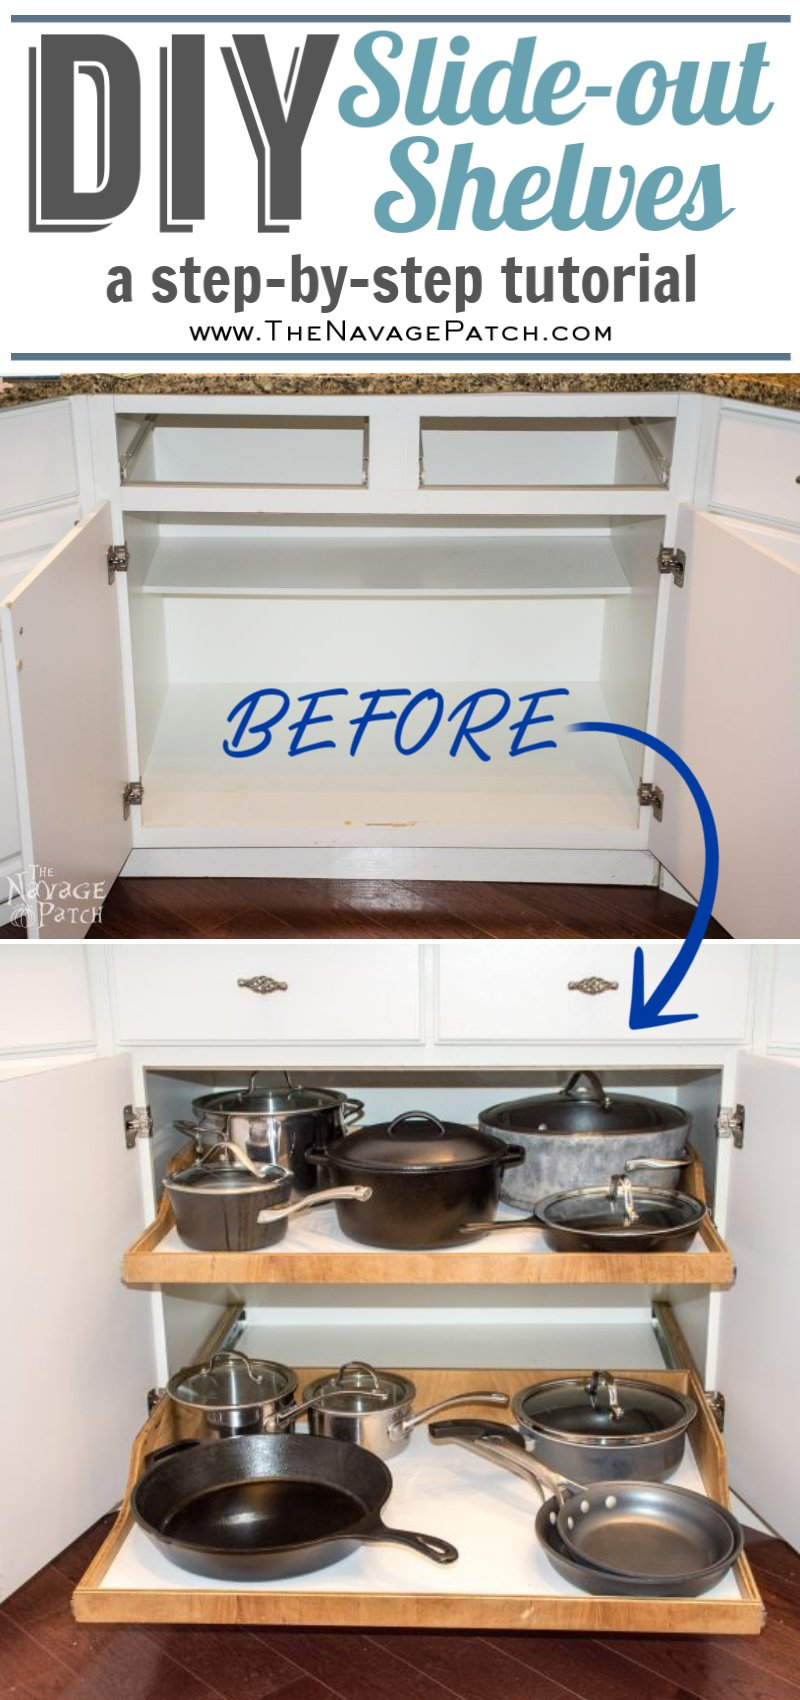 DIY Slide-Out Shelves pin image